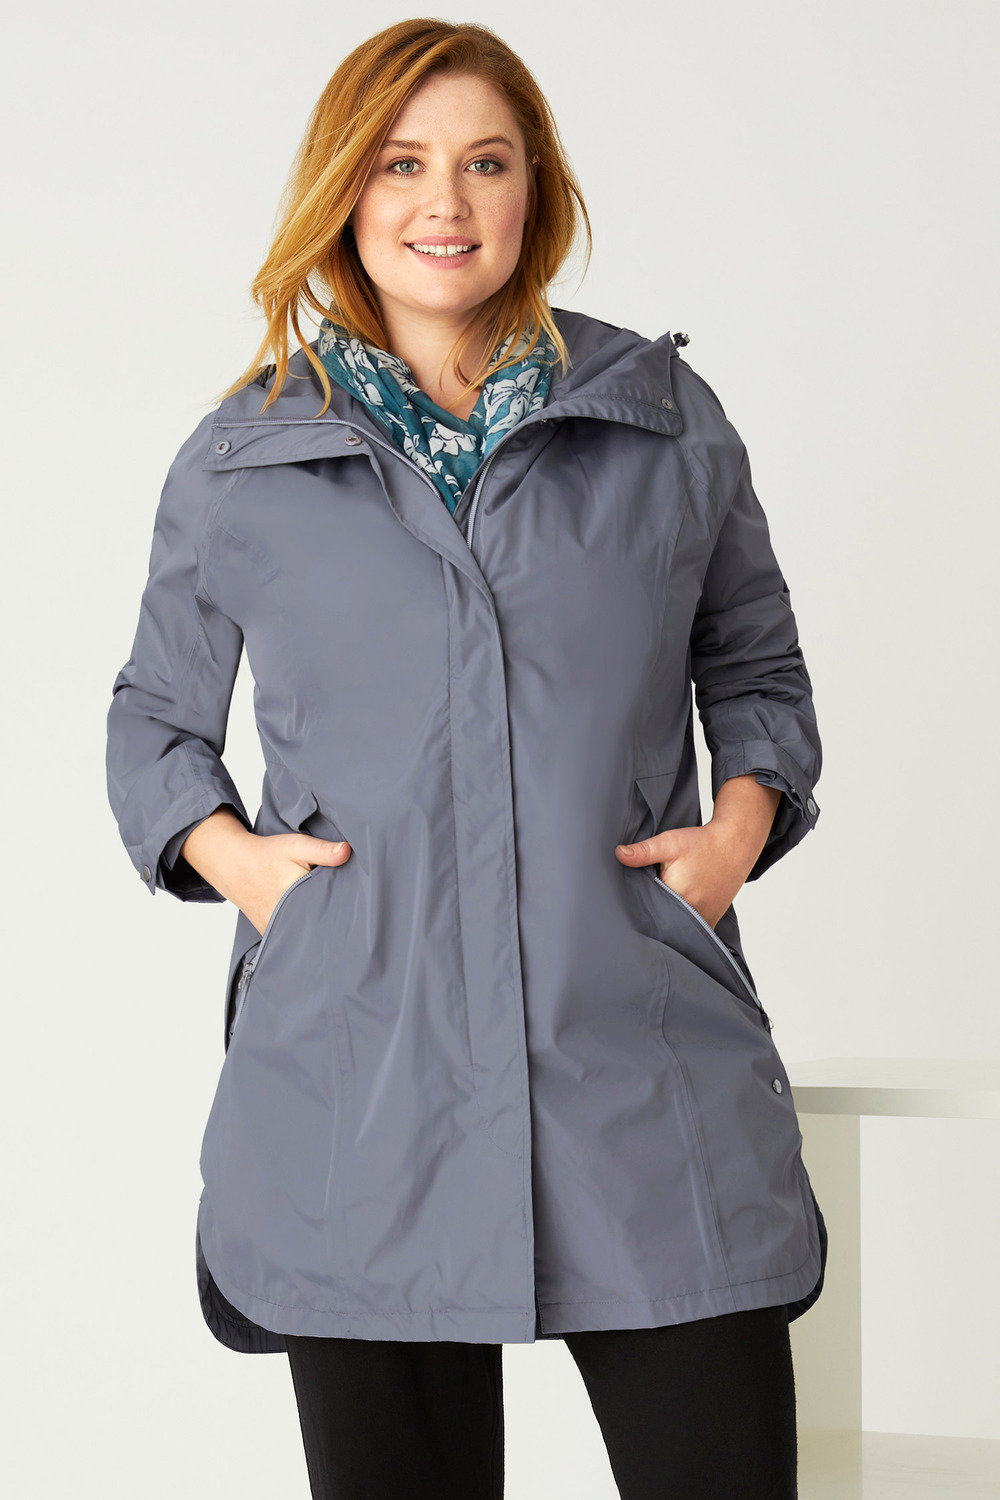 Best Winter Coats Plus Size 4x of 2020 Top Rated & Reviewed